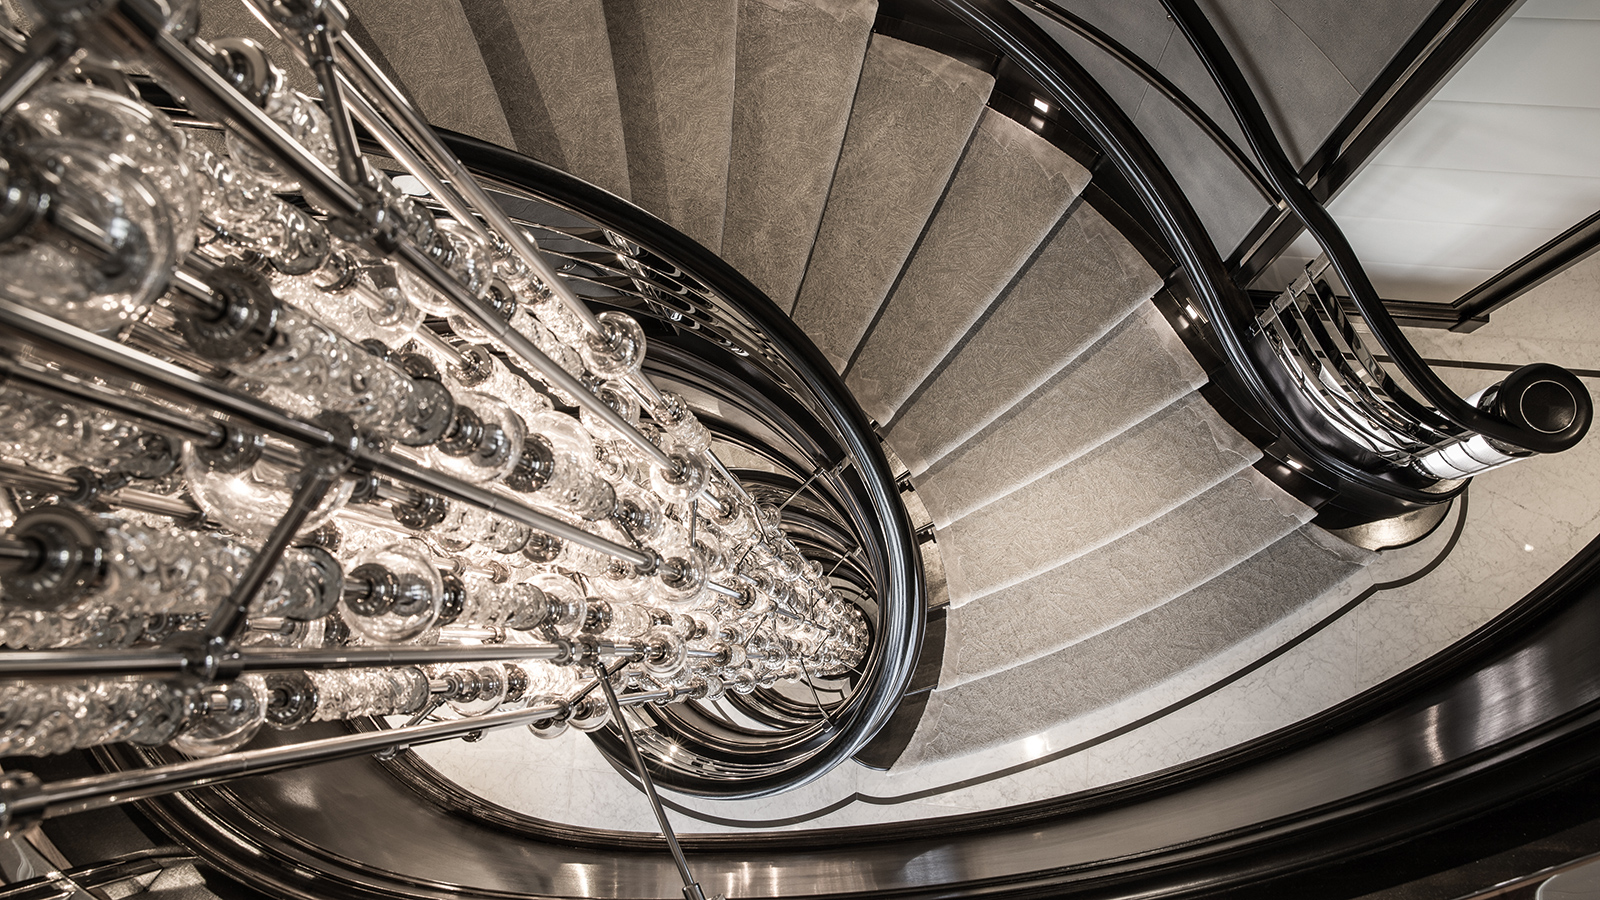 the-staircase-on-the-derektor-superyacht-aquila-after-her-pendennis-refit